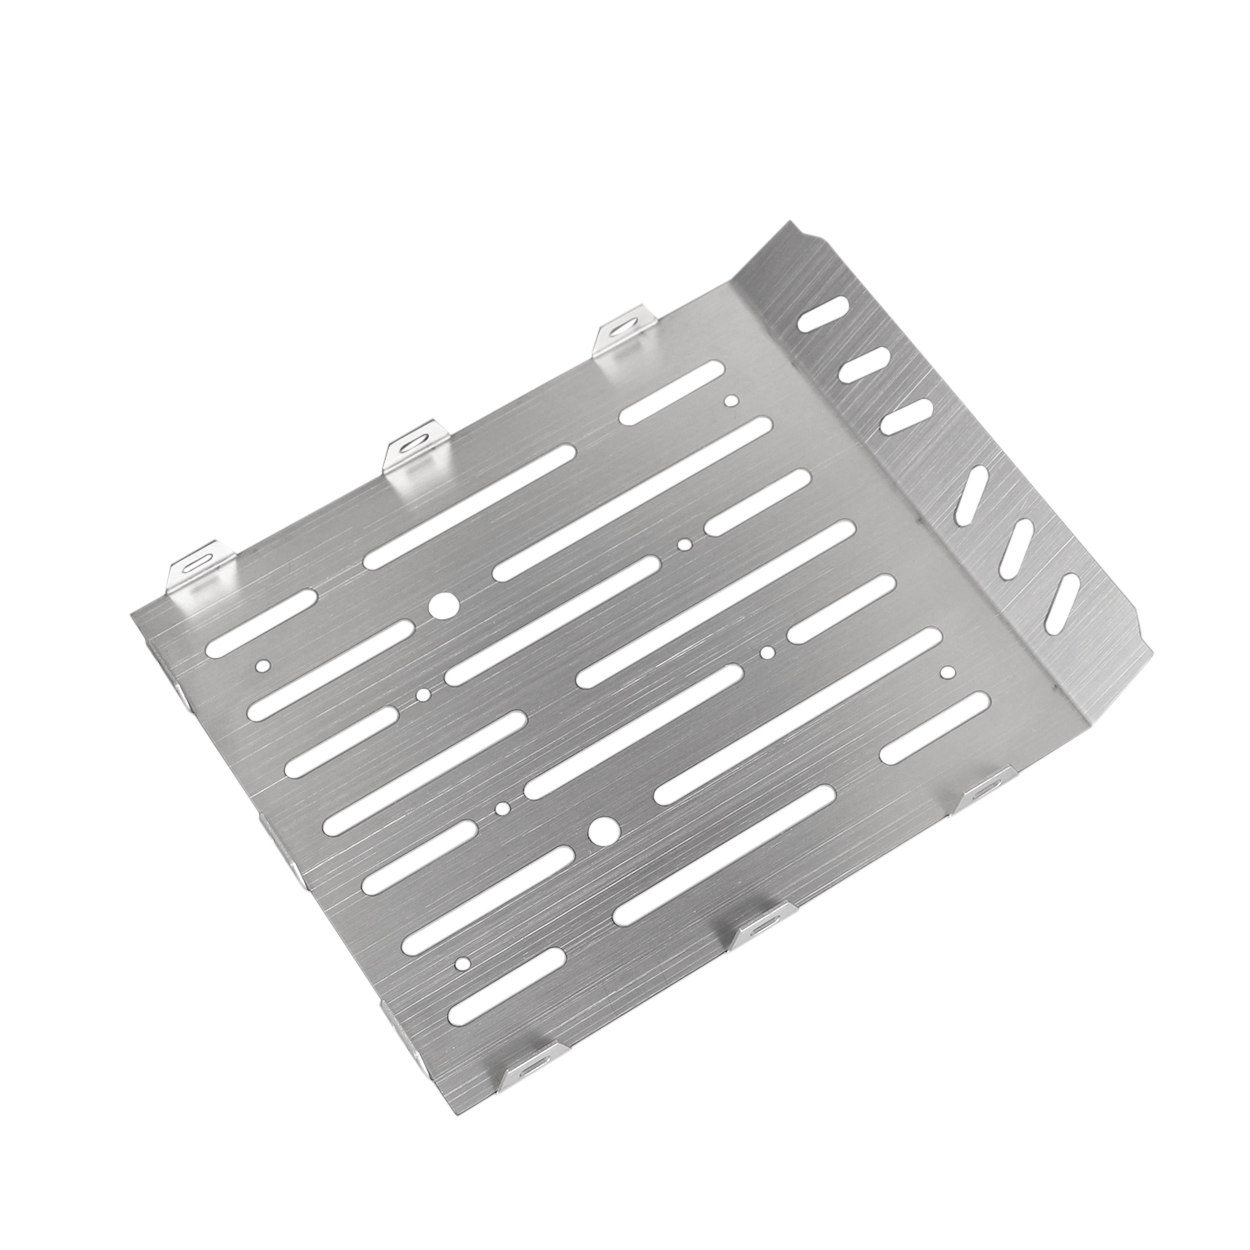 Stainless Steel Trunk Tail Box Plate Guard for Mercedes-benz TRX6 G63 6X6 1/10 RC Crawler Car Upgrade Parts Silver